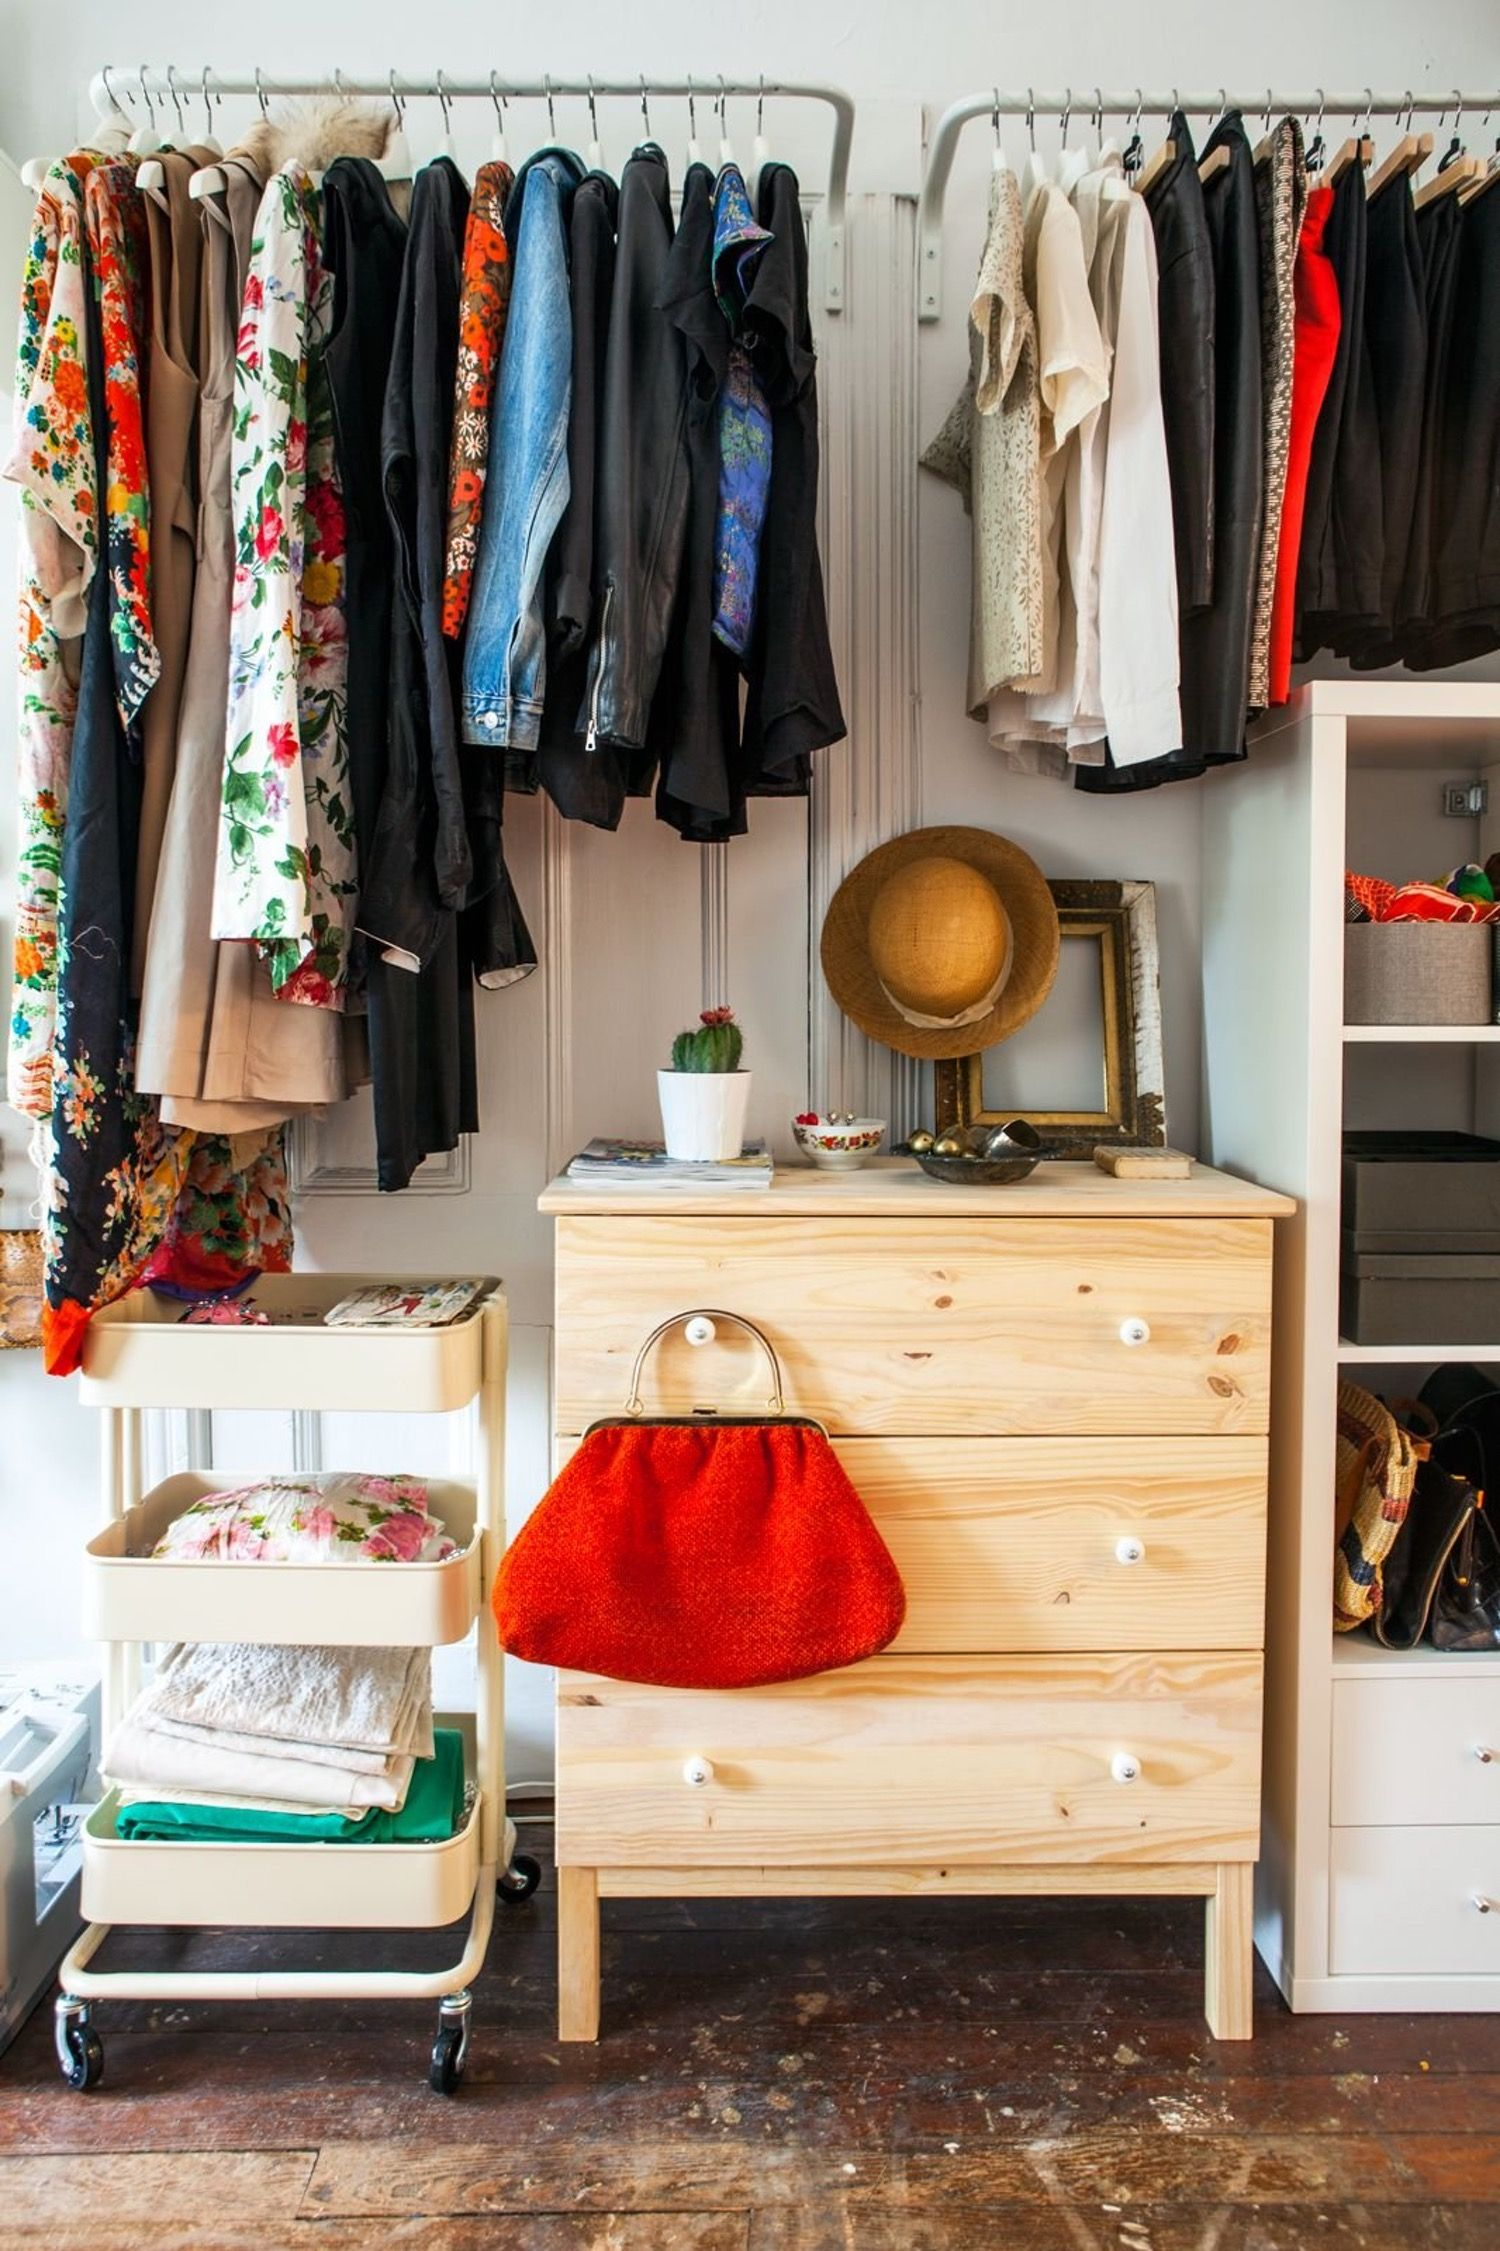 5 real life wardrobe storage solutions from apartments with no rh pinterest com